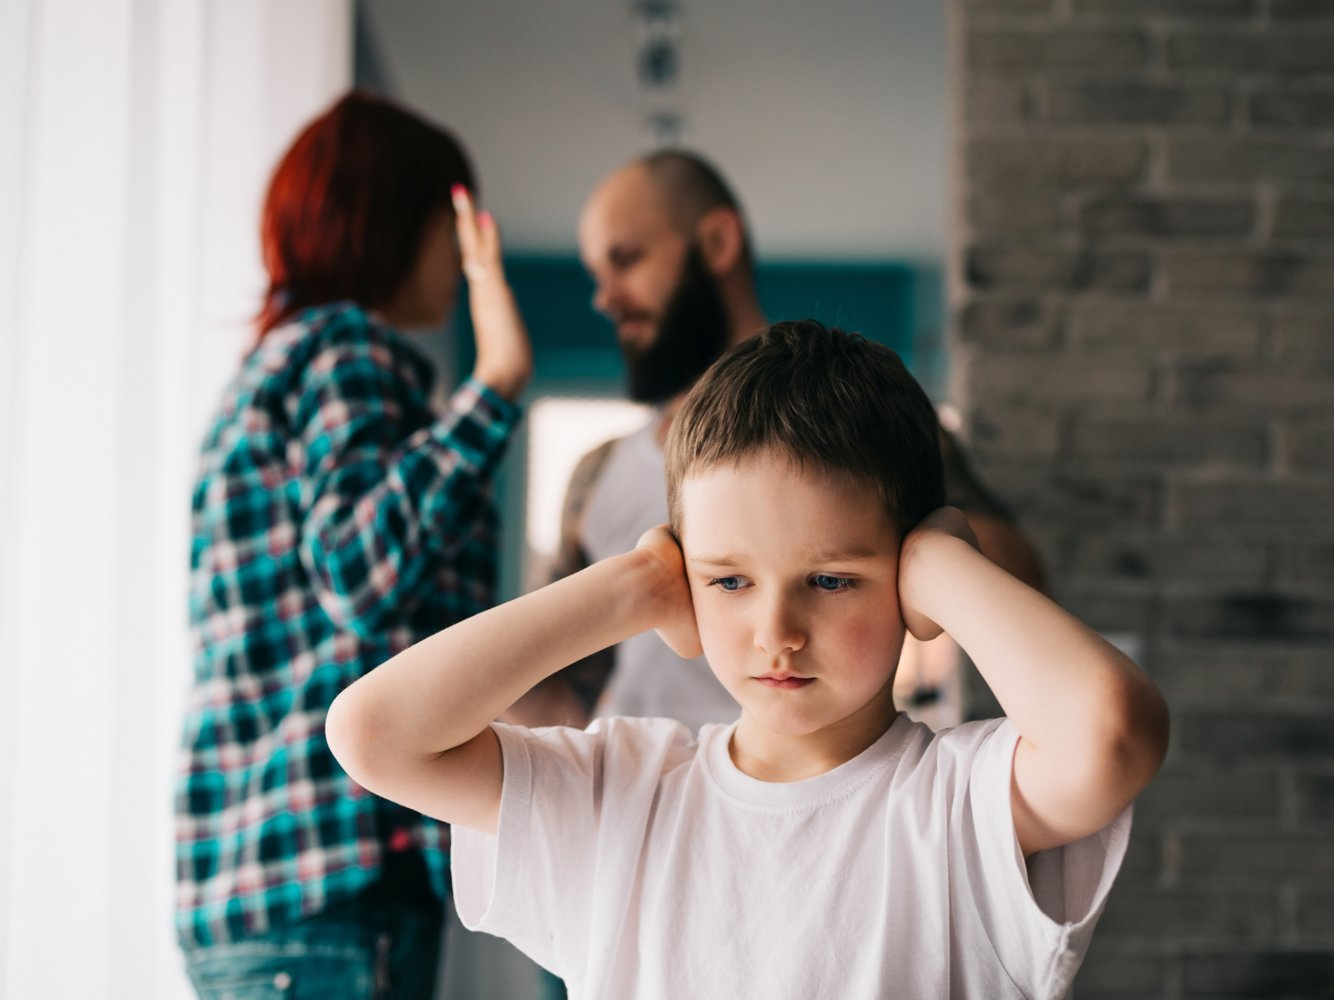 6 problematic things parents do that can make their children insecure, withdrawn, drug-dependent, or otherwise worse off as they grow up